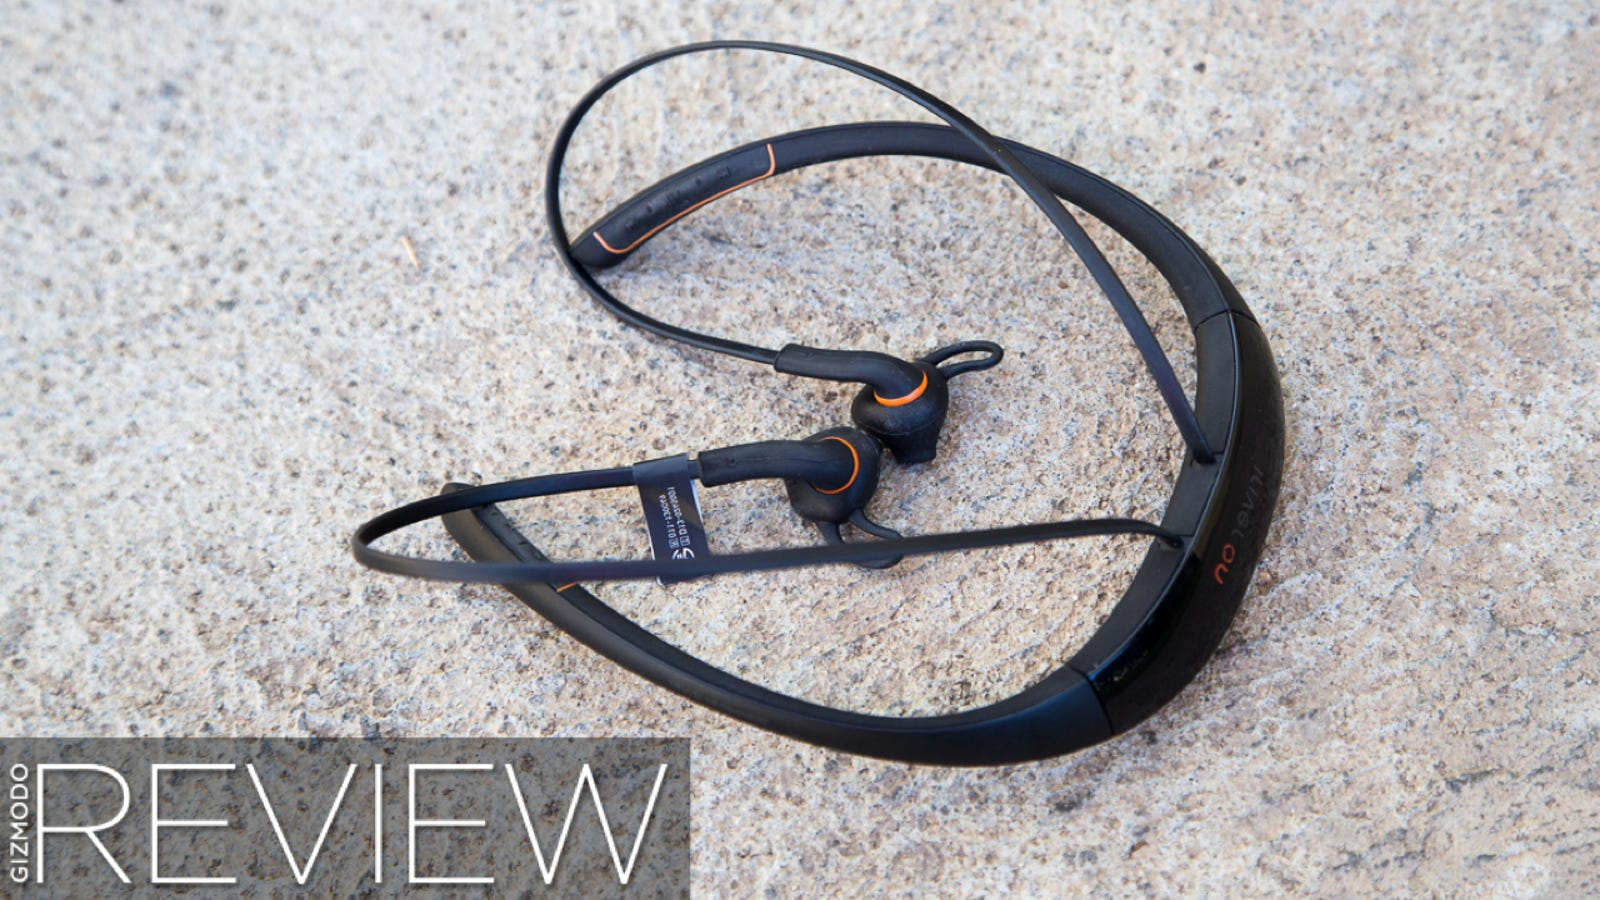 earphone clip bose - iRiver On Review: When Bad Apps Ruin Great Fitness Gadgets